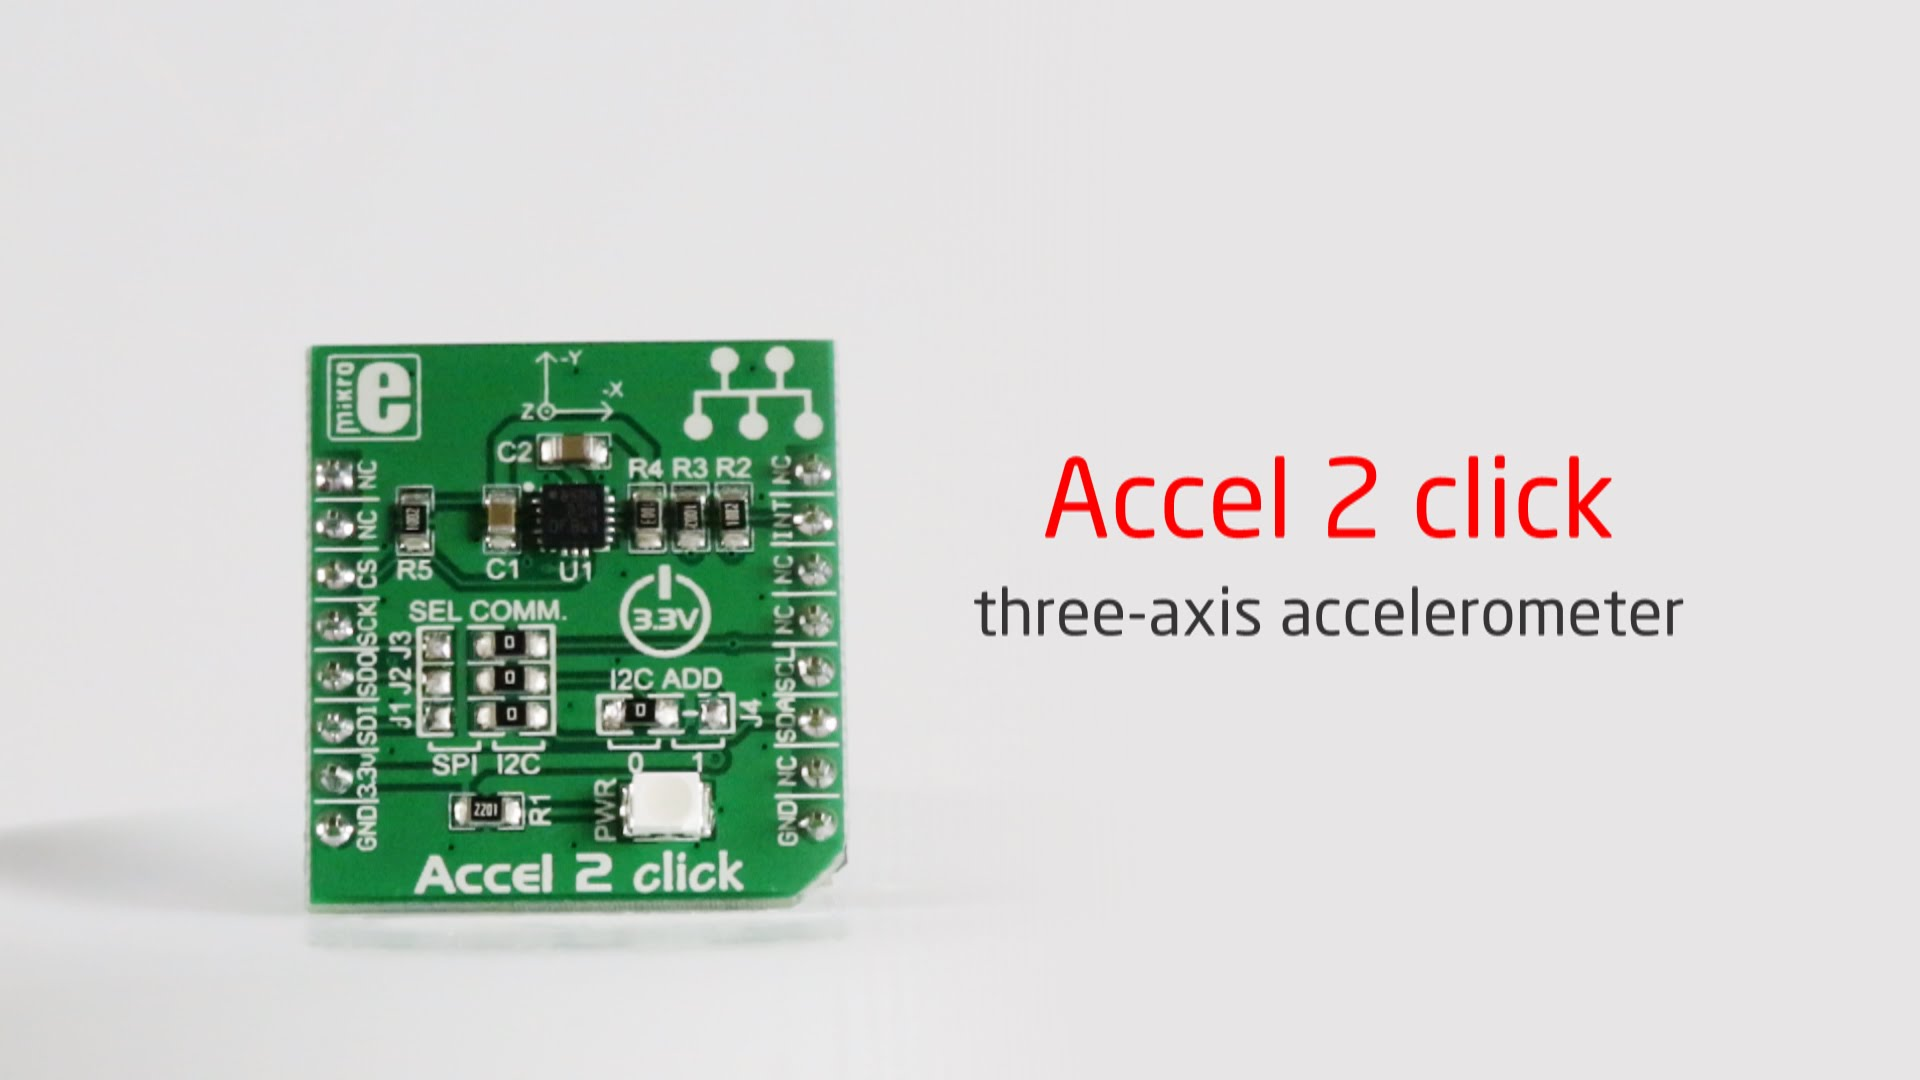 Accel 2 click released